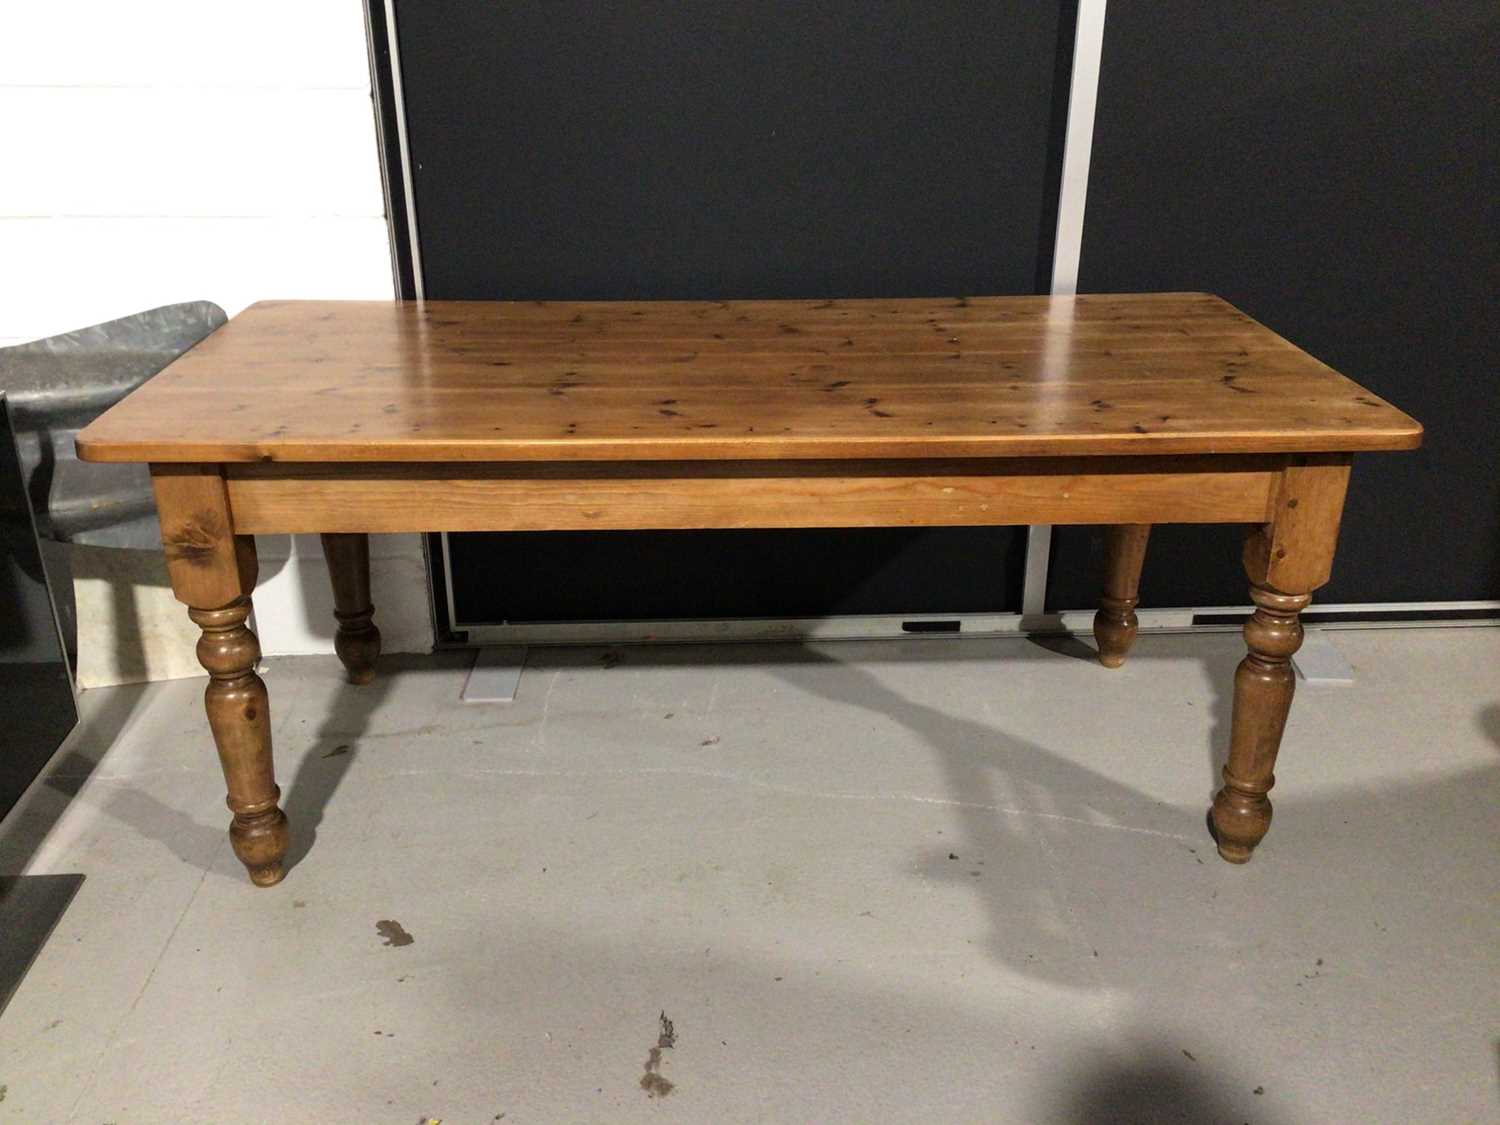 Lot 10 - Pine kitchen table on turned legs, 183cm wide x 85.5cm deep x 76cm high, set of six kitchen chairs comprising five standards and one carver plus a pine two height dresser